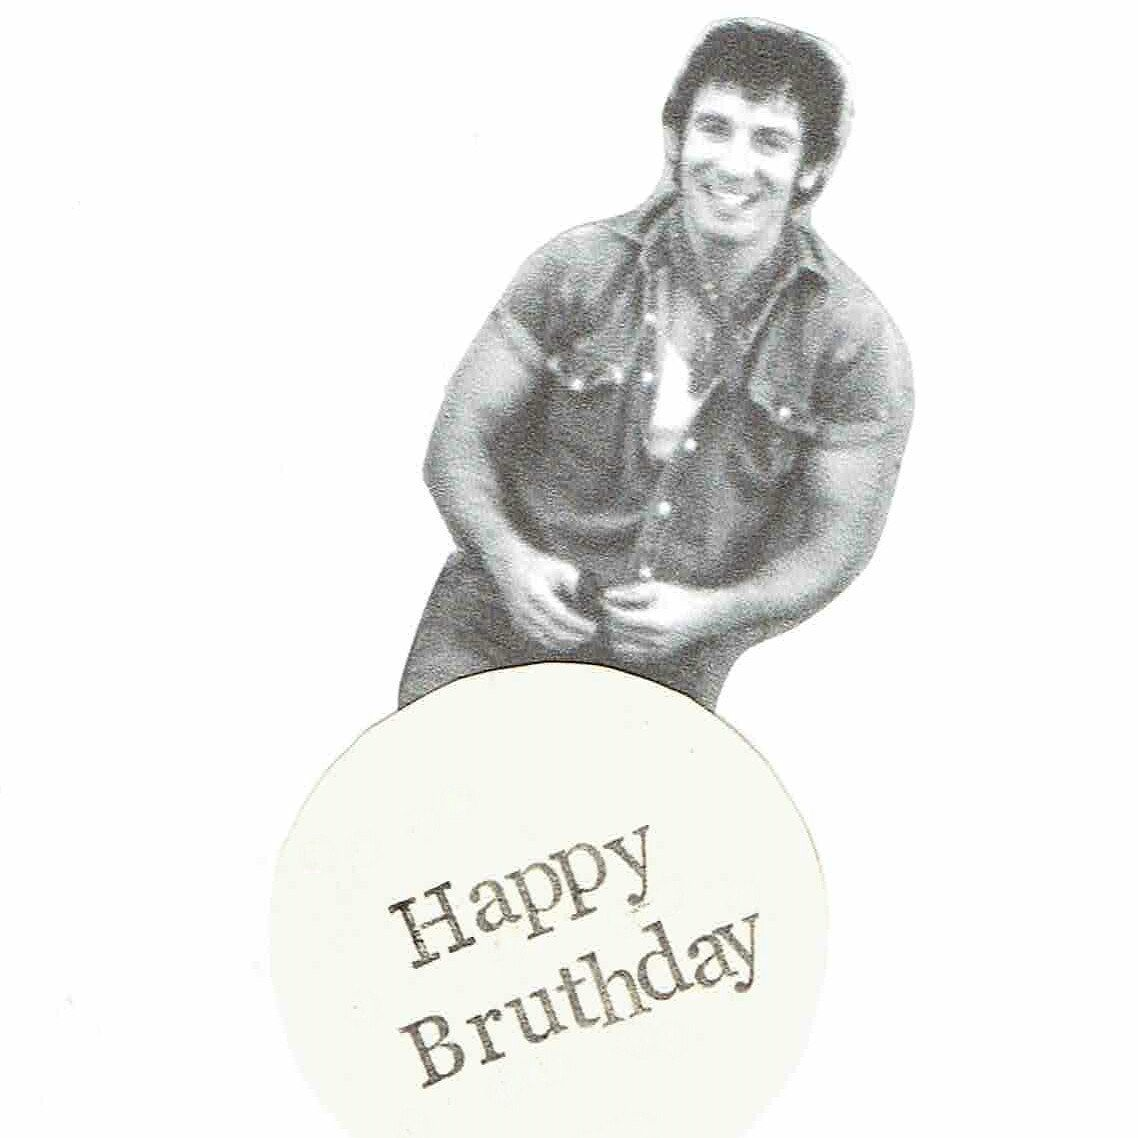 Happy bruthday bruce springsteen birthday card funny pun humor lettering and collaged paper image on ivory card stock and comes with matching envelope shipped in a protective plastic sleeve more birthday kristyandbryce Choice Image